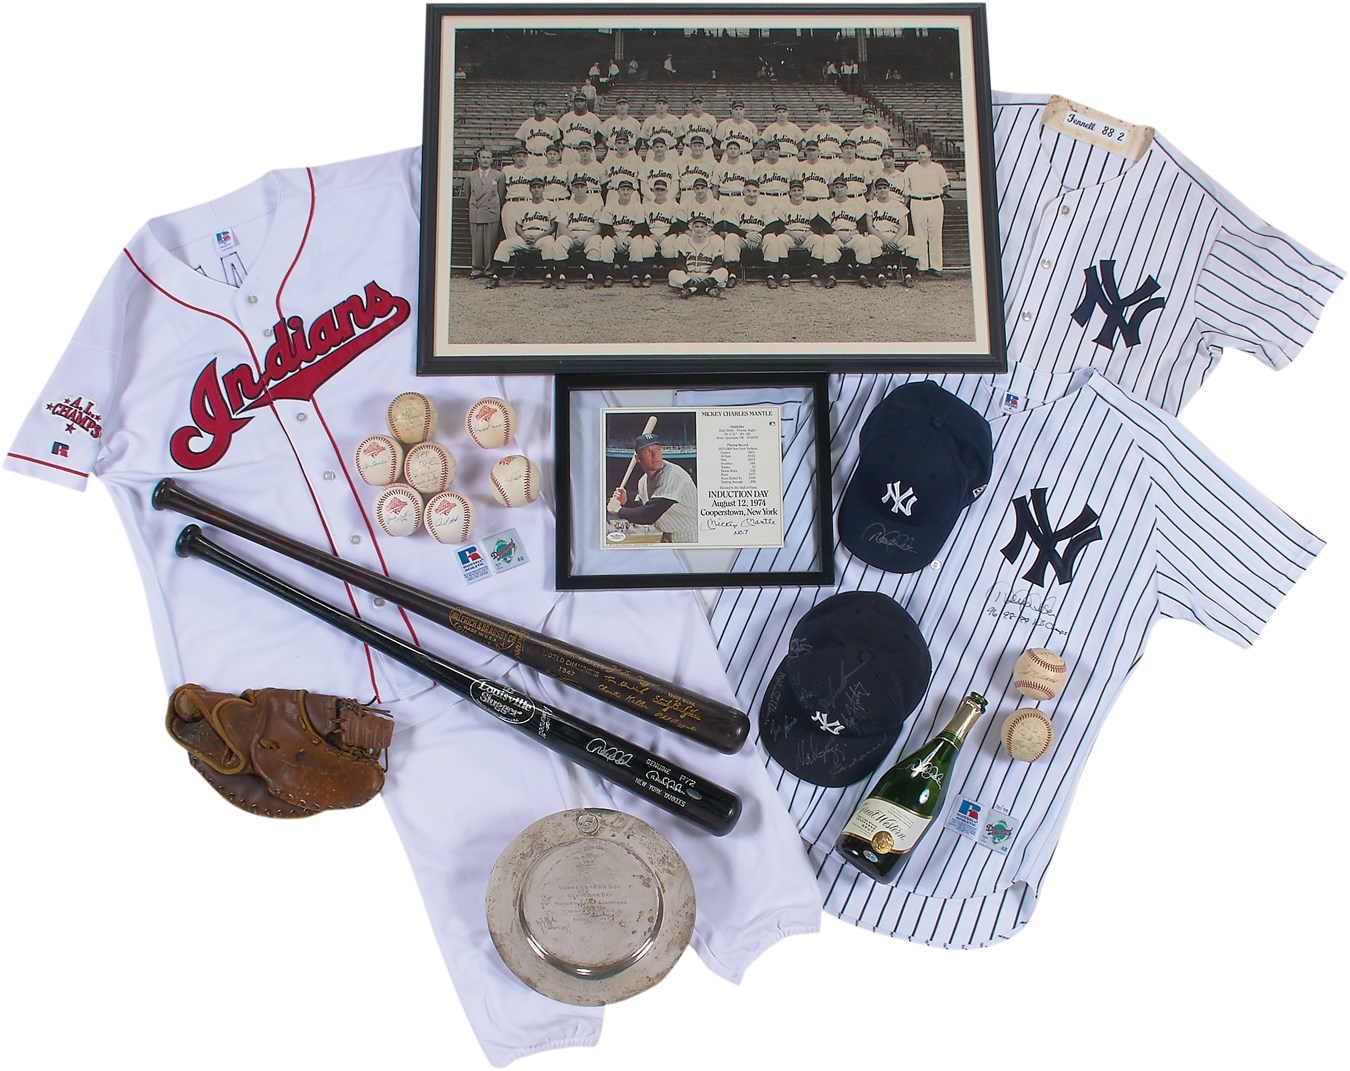 Baseball Equipment - Steel17